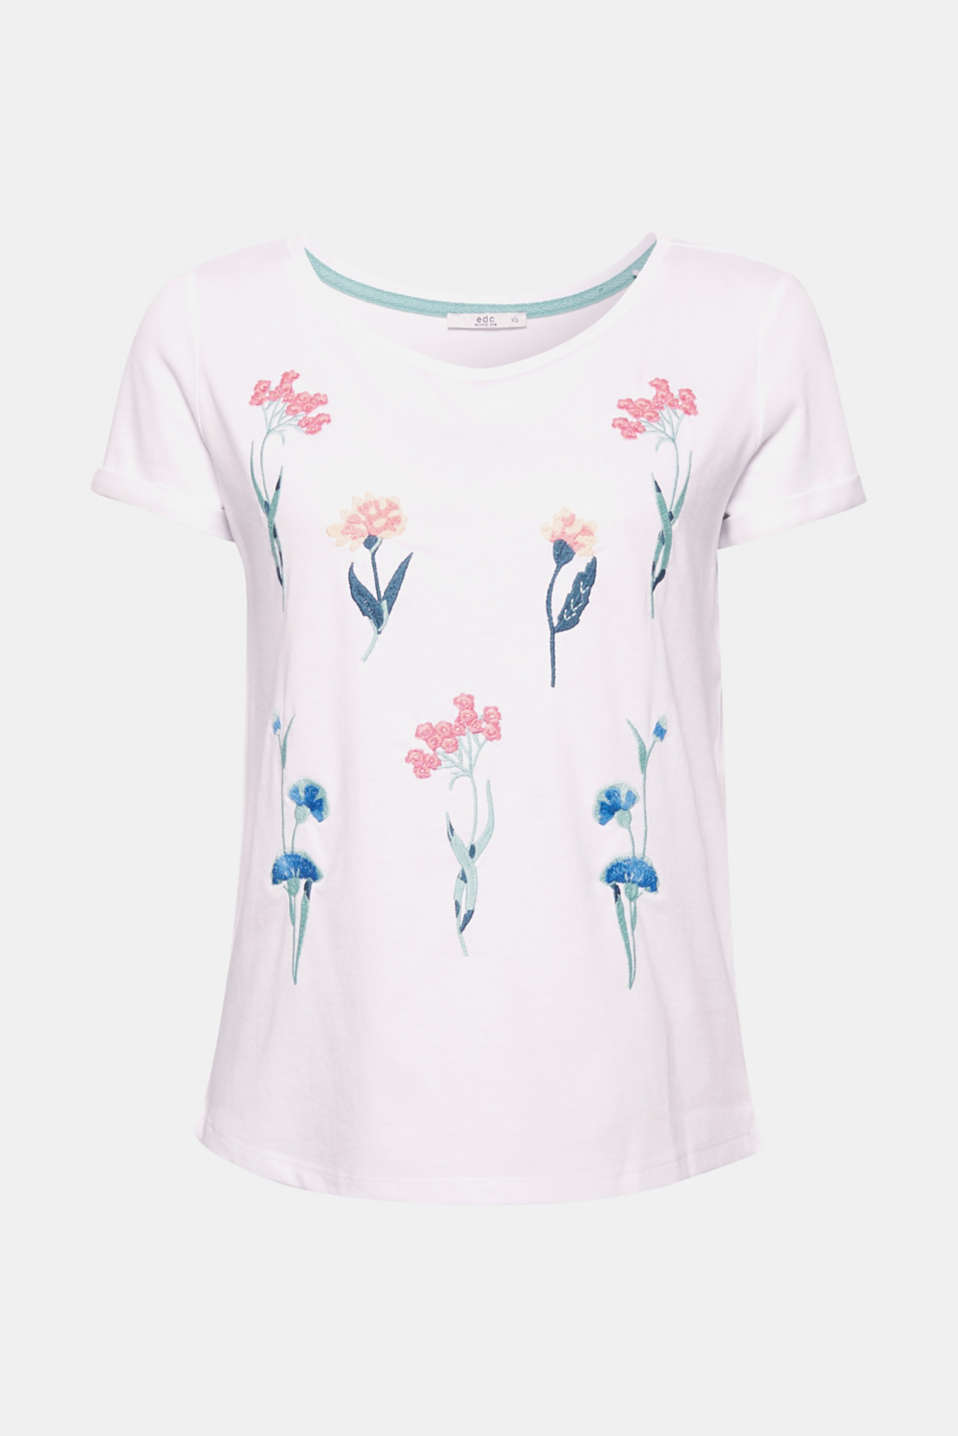 The perfectly positioned, embroidered flower motifs make this soft, smooth T-shirt special, unique and eye-catching!